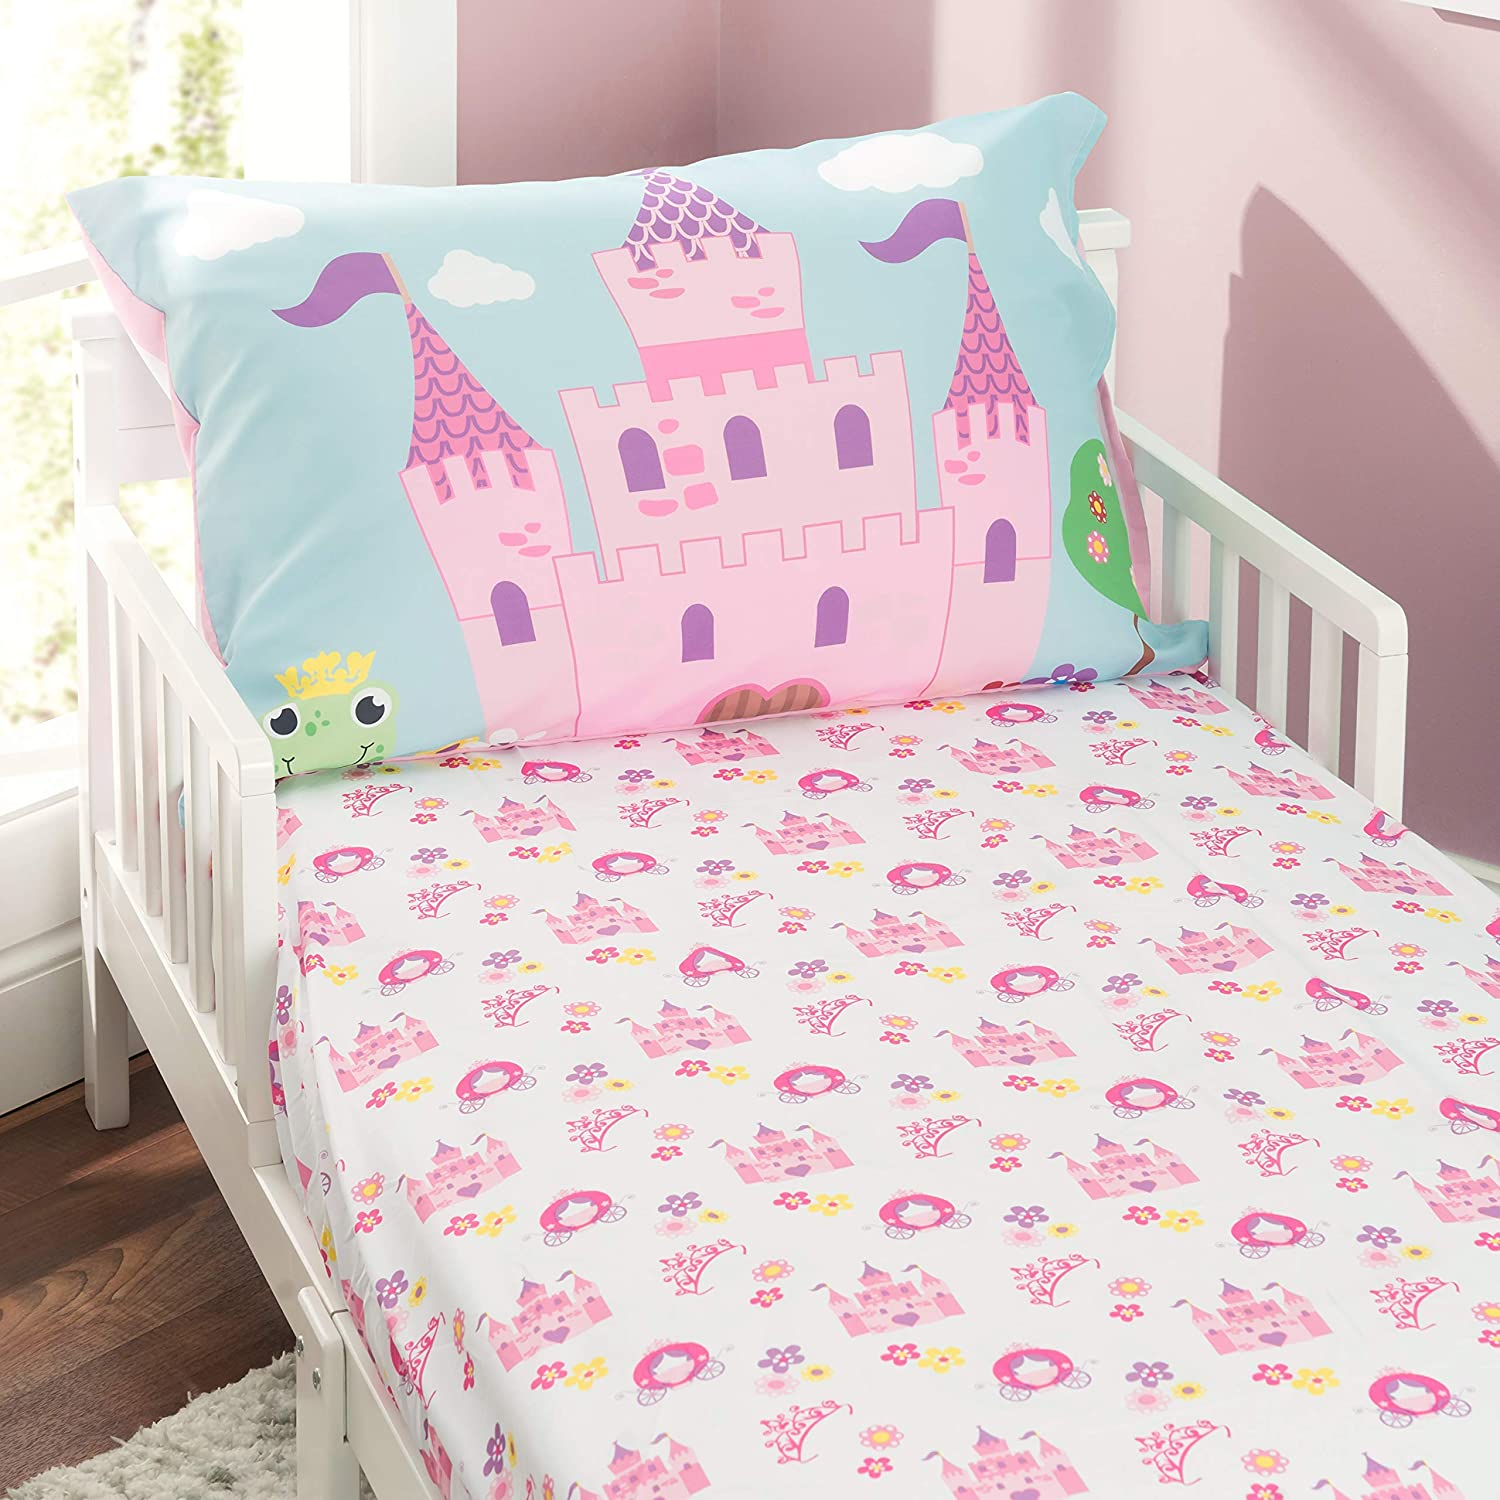 Everyday Kids Toddler Fitted Sheet -Princess Max 75% OFF and Surprise price Set Pillowcase